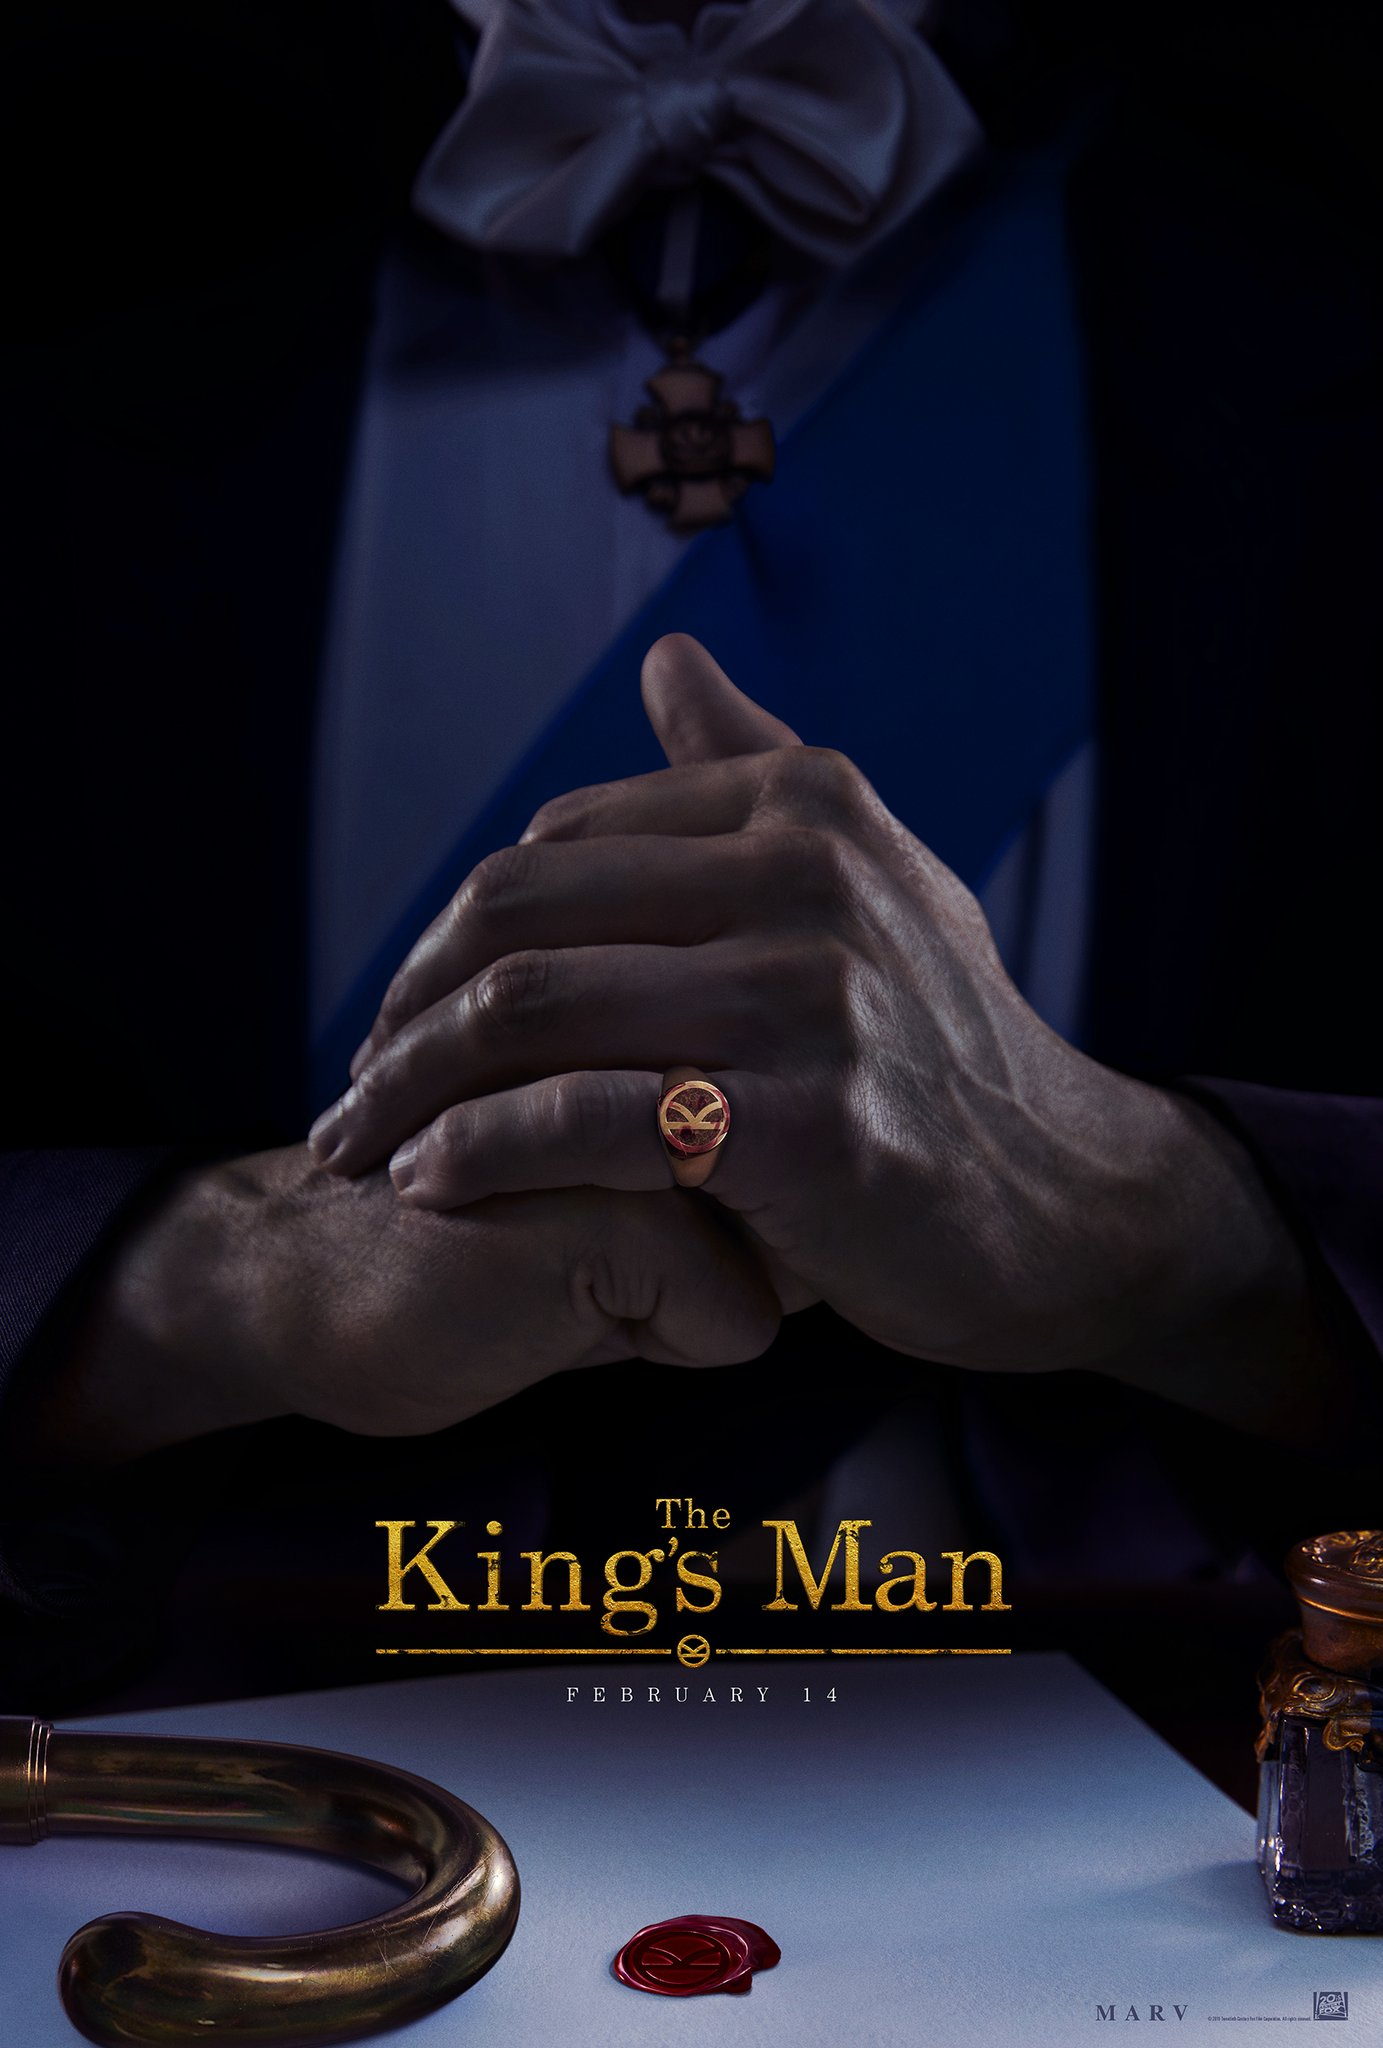 @KingsmanMovie